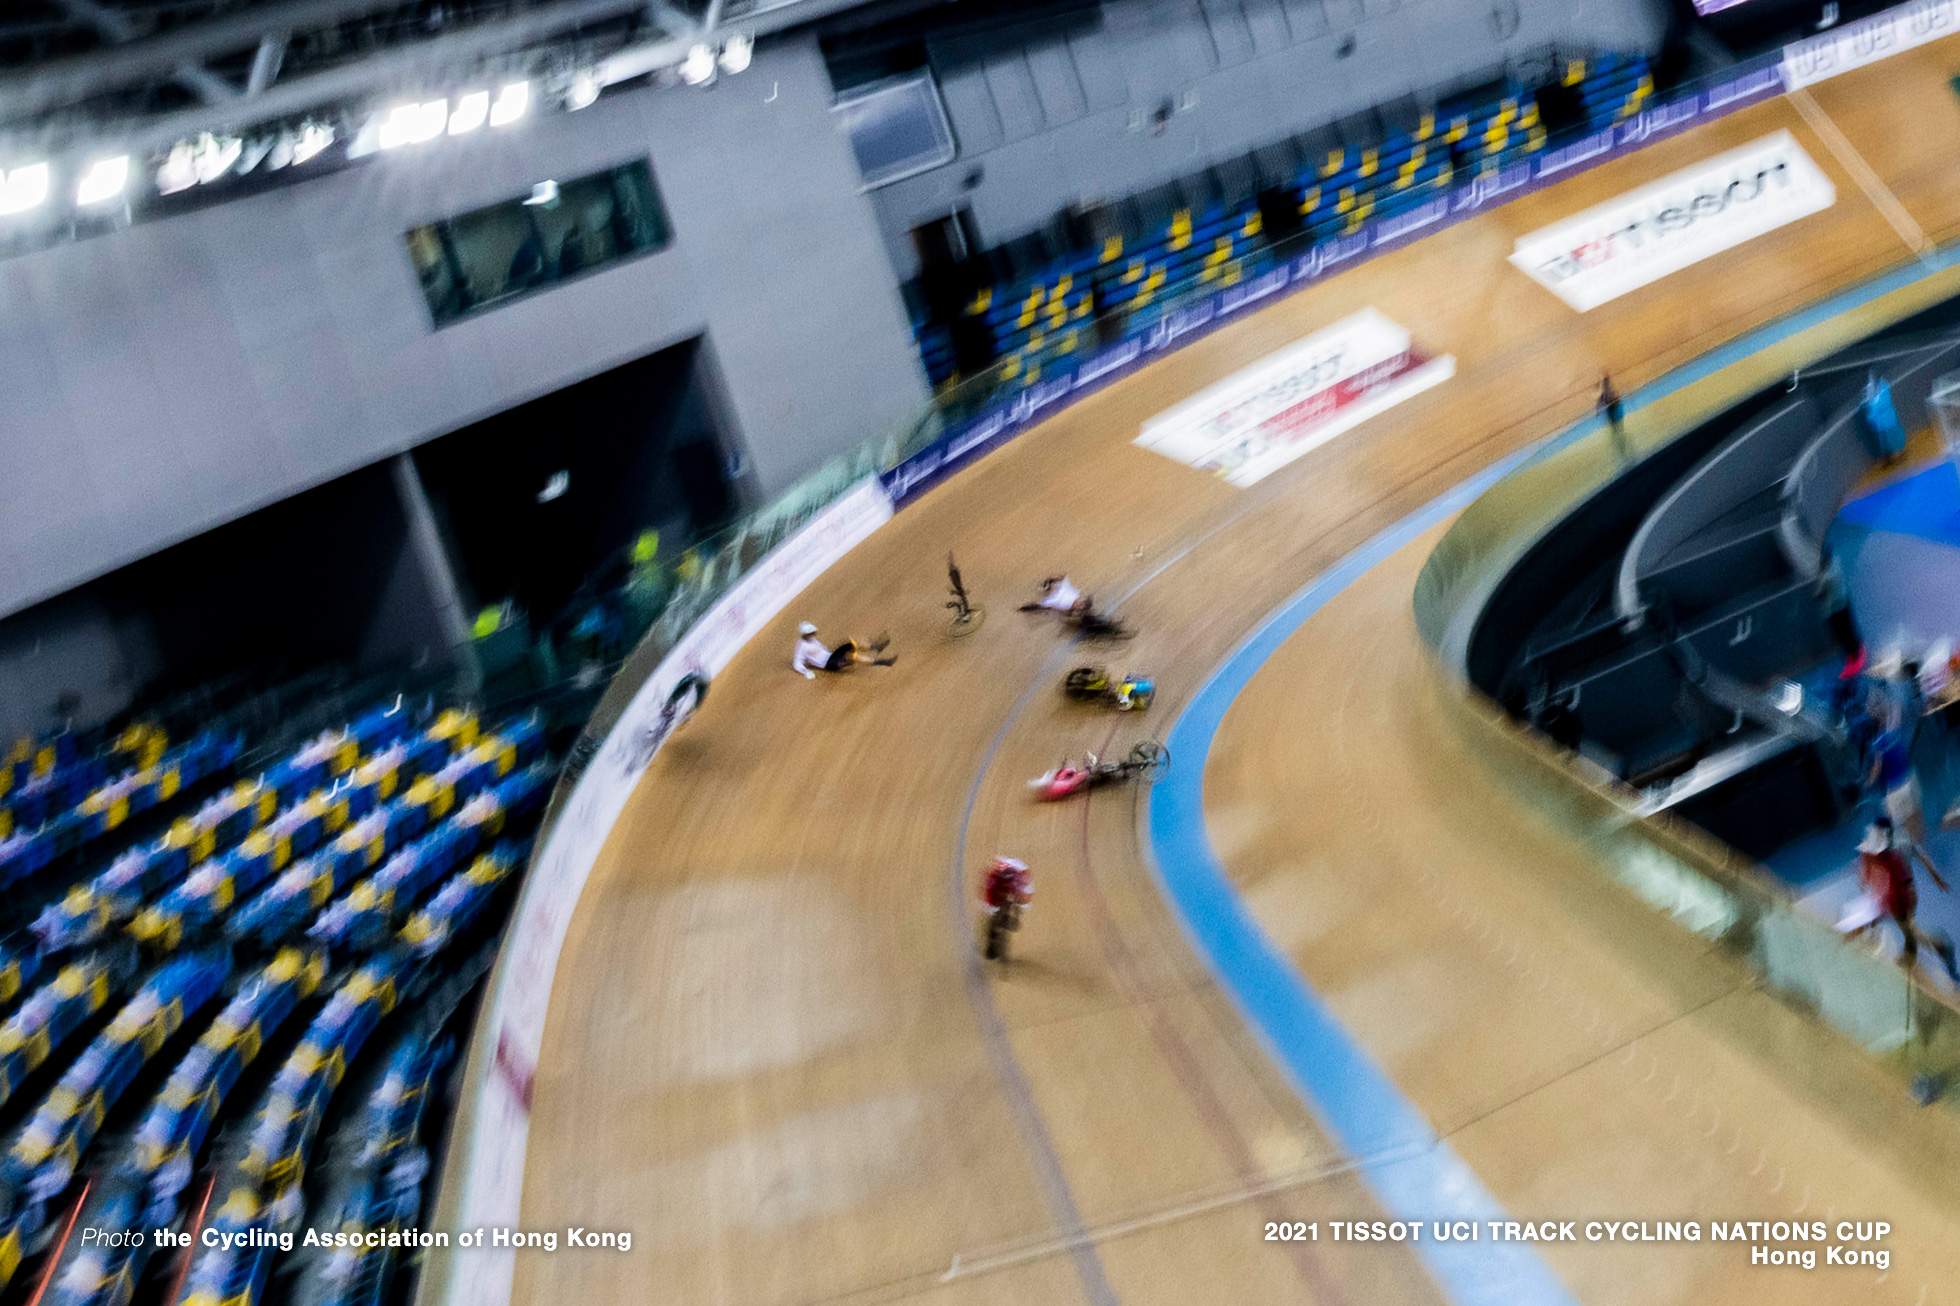 1st Round, Men's Keirin, TISSOT UCI TRACK CYCLING NATIONS CUP - HONG KONG